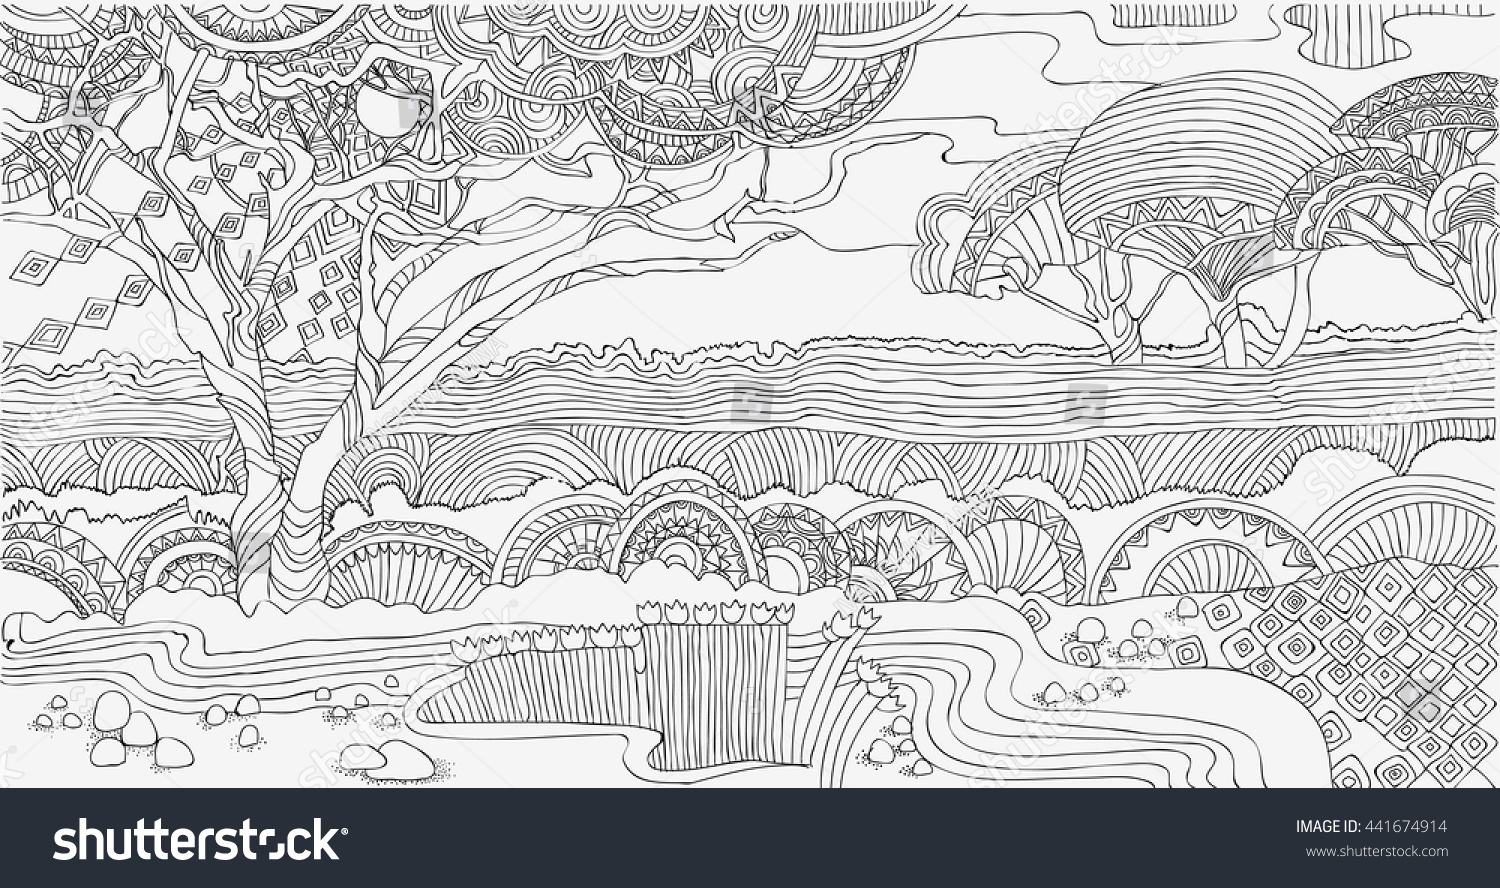 Beautiful African Landscape Coloring Pages Africa Stock Vector